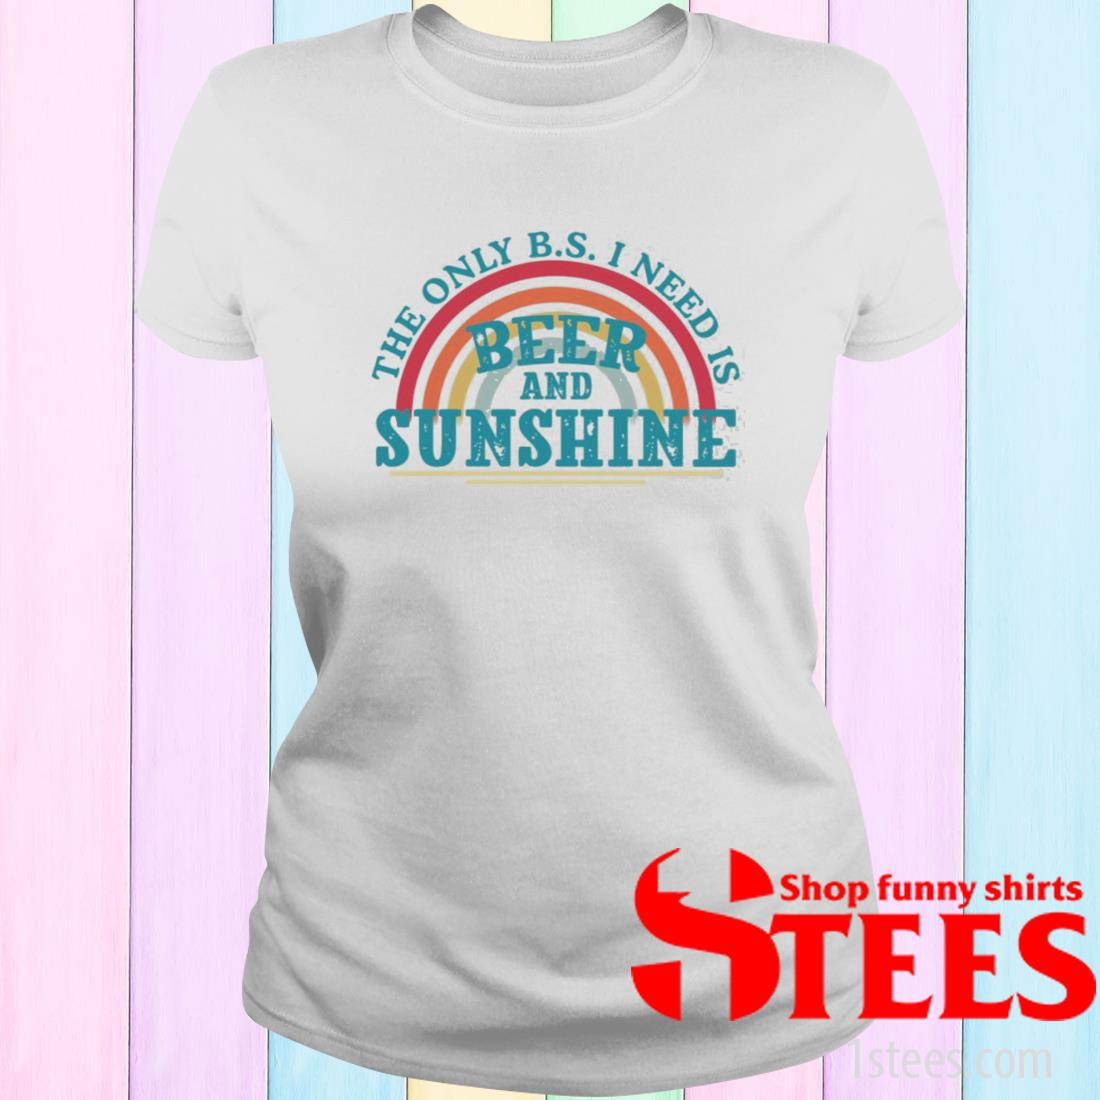 The Only Bs I Need Is Beer And Sunshine Shirt ladies tee